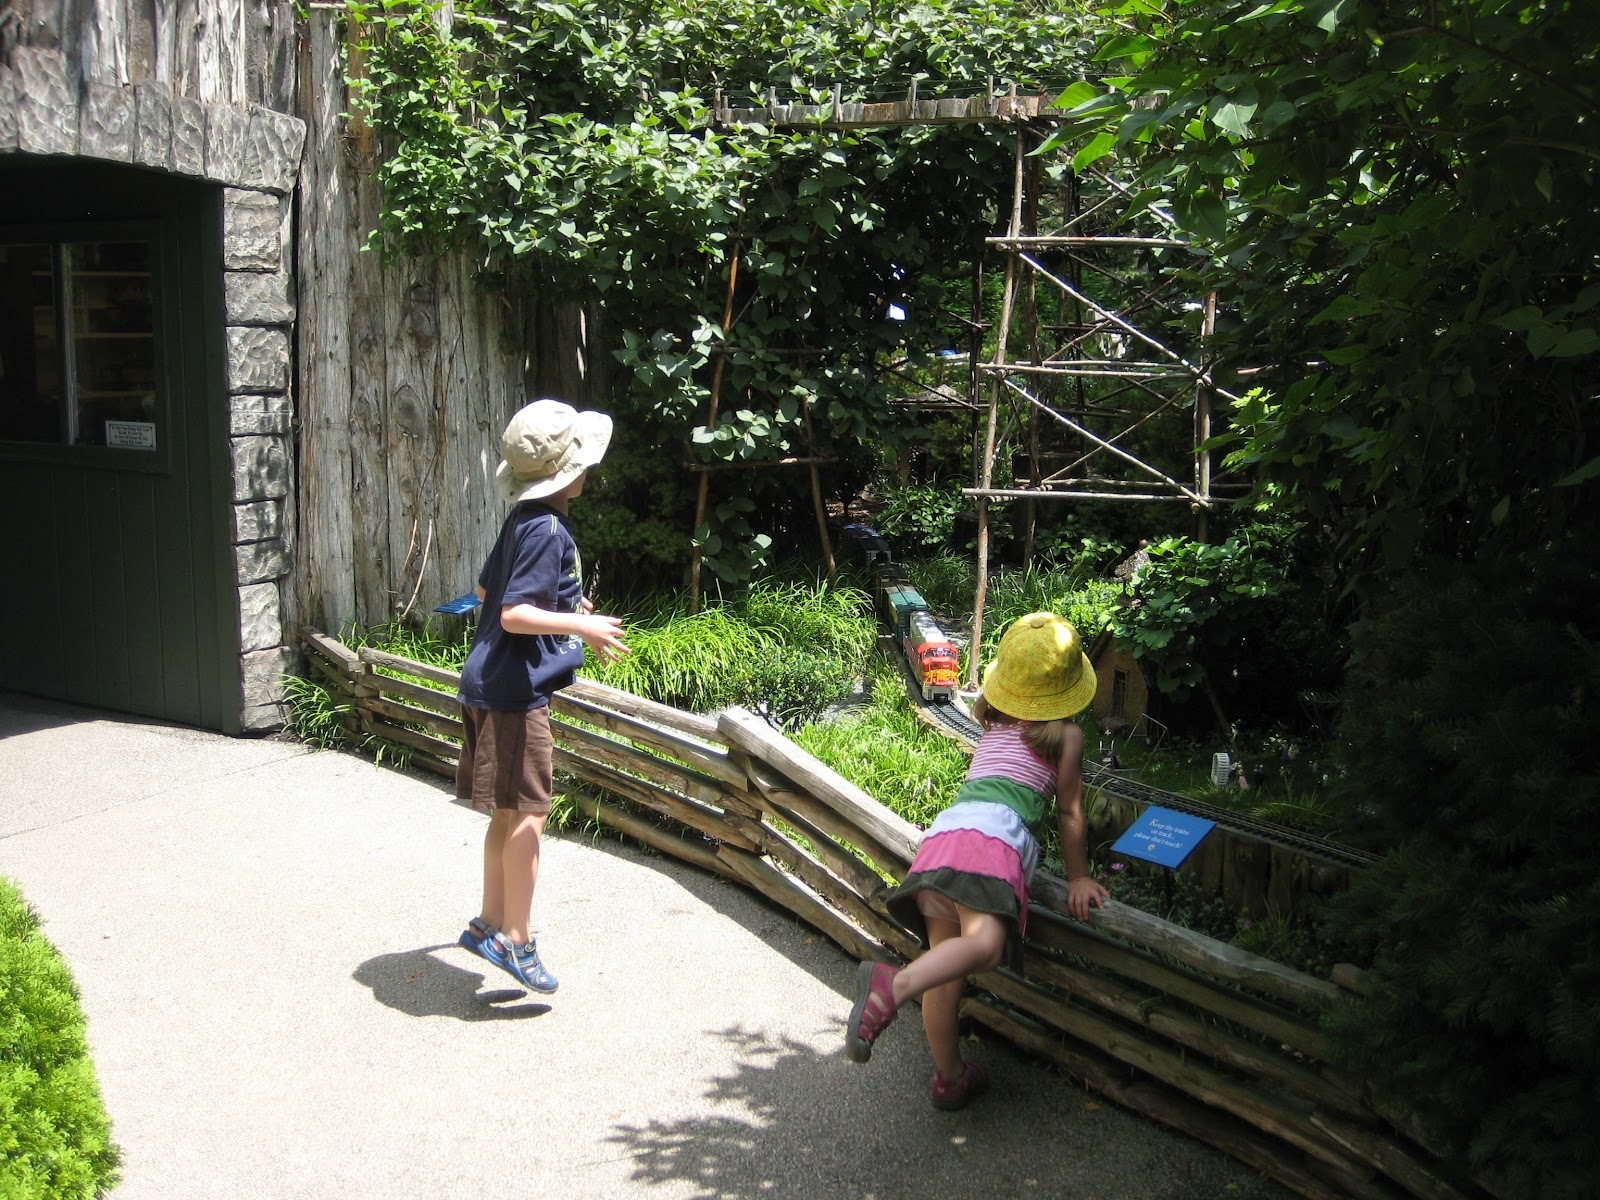 Railroad Kids A Visit To The Model Railroad Garden At The